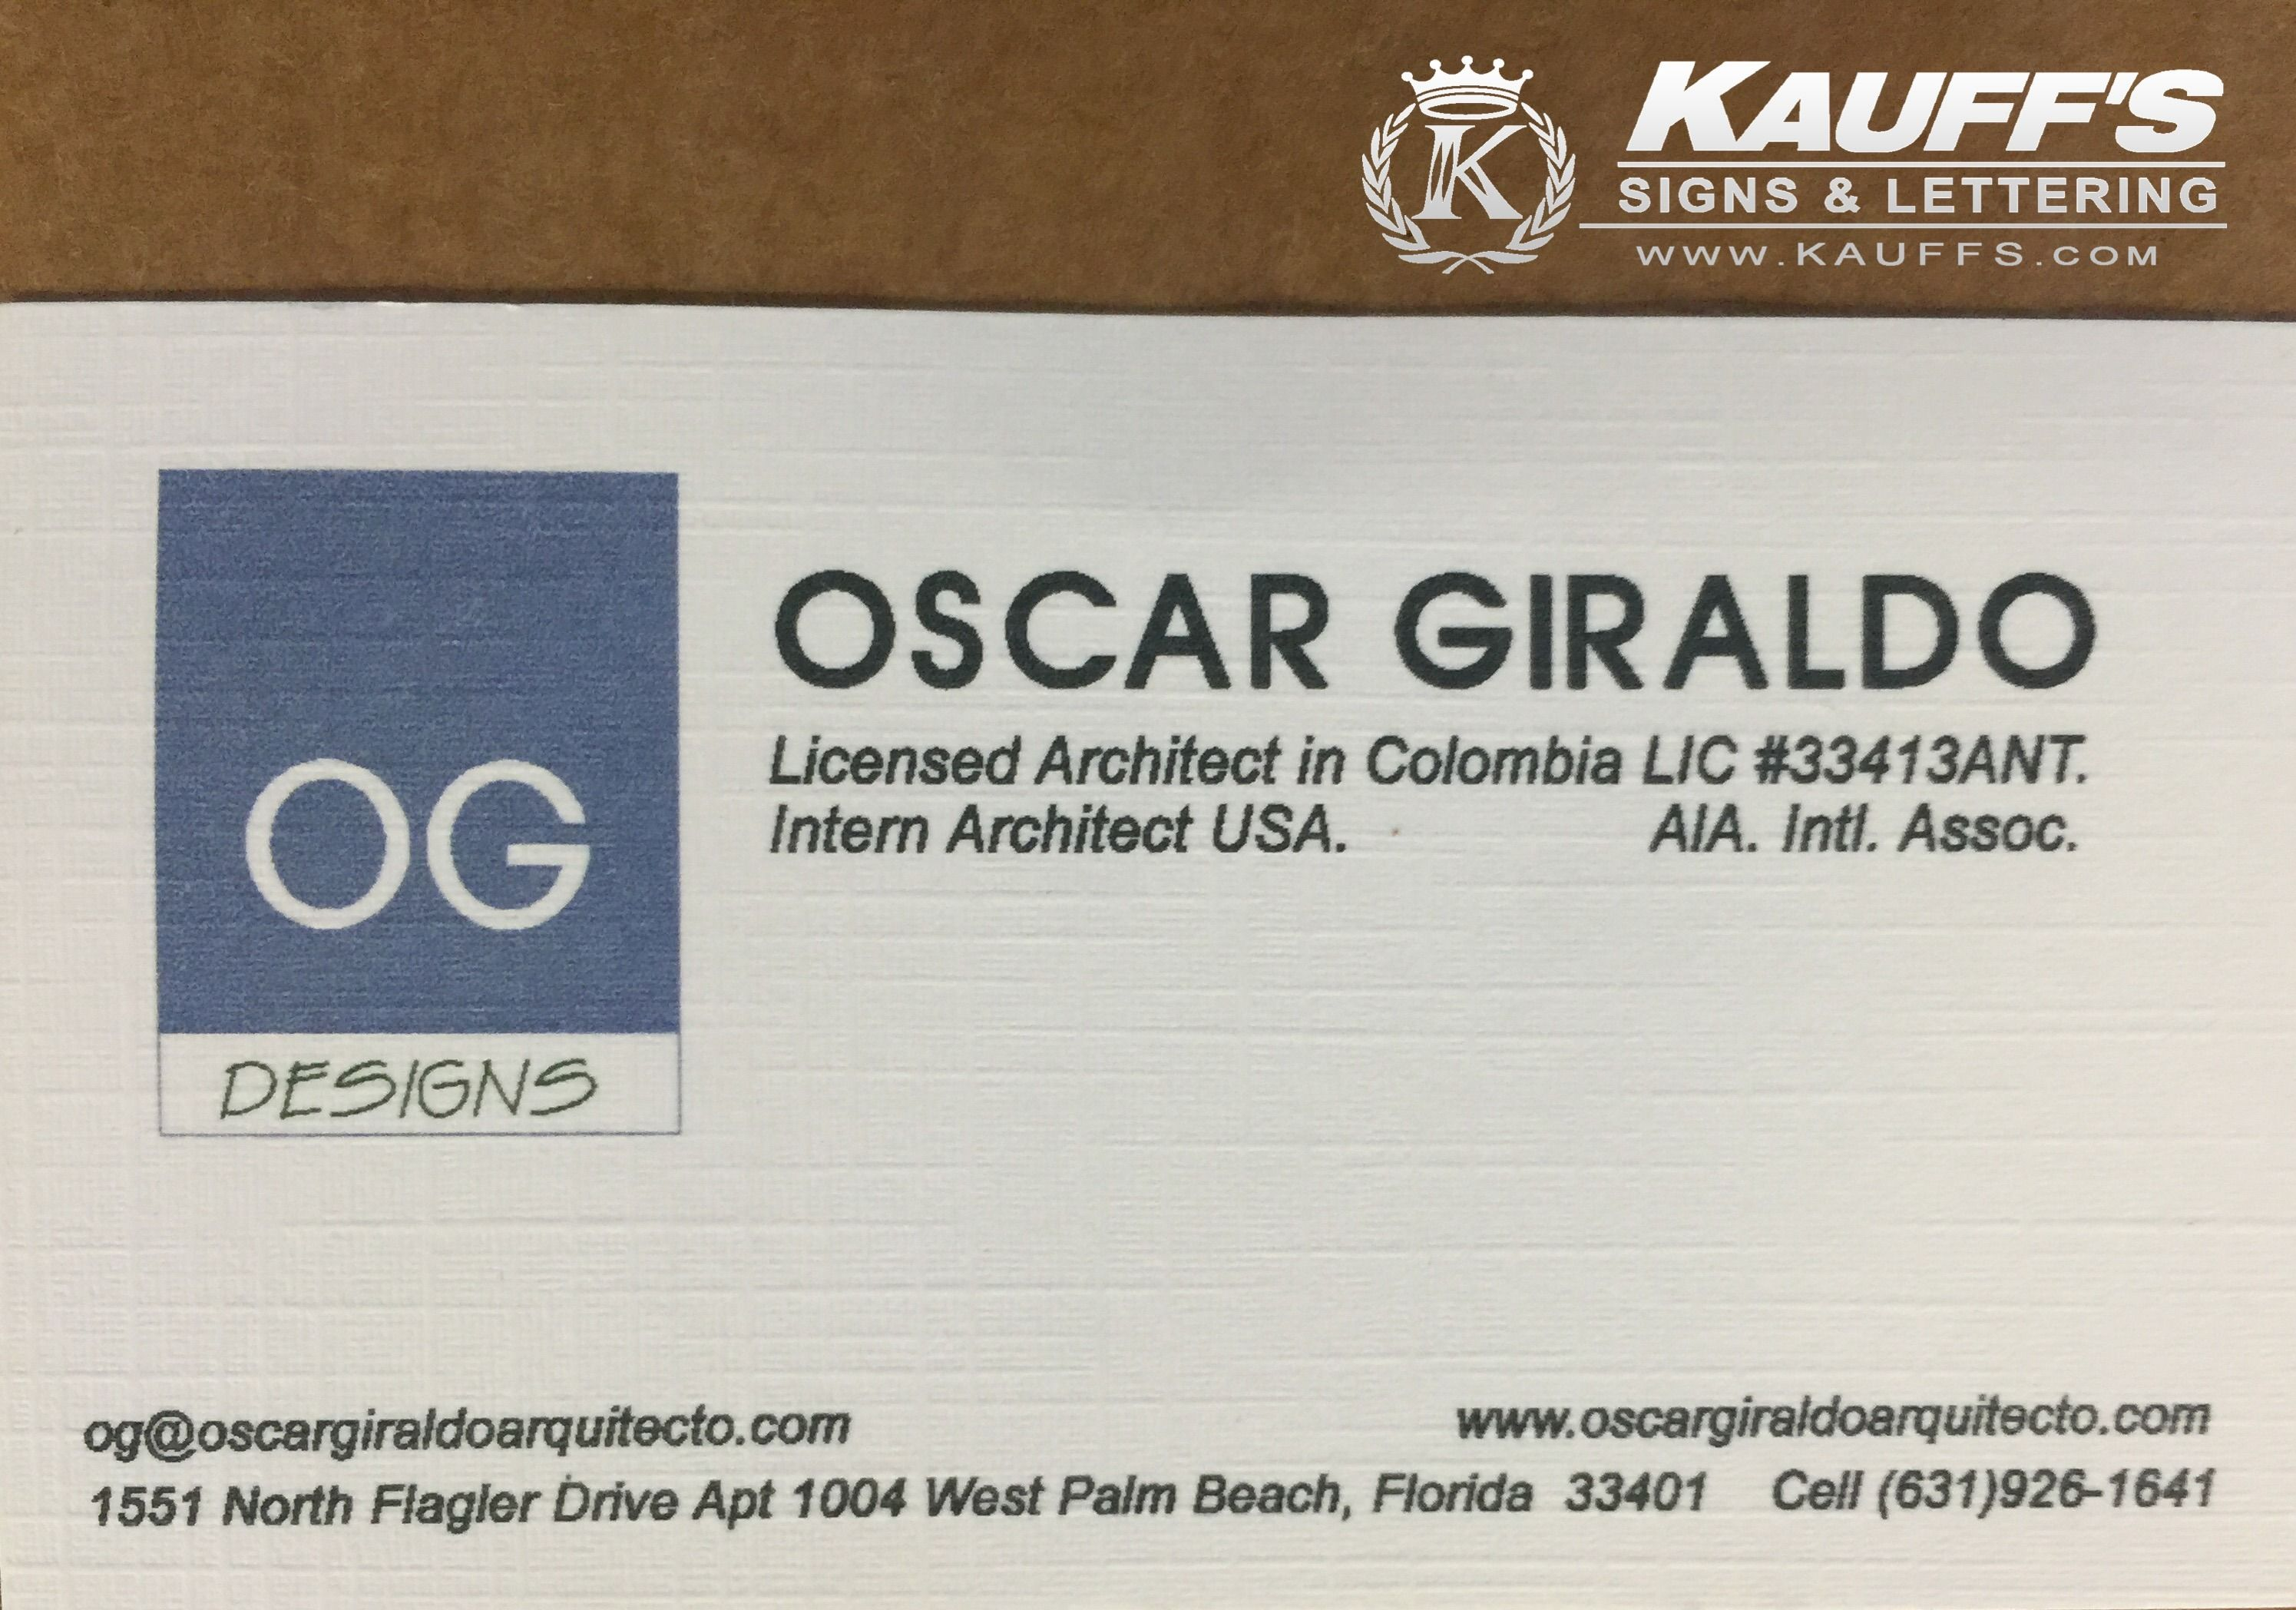 Come visit us for business cards. We have a large selection to choose from! Check out this beautiful classic linen business card! #KauffsPrinting #BusinessCards #SouthFloridaPrinting #Kauffs